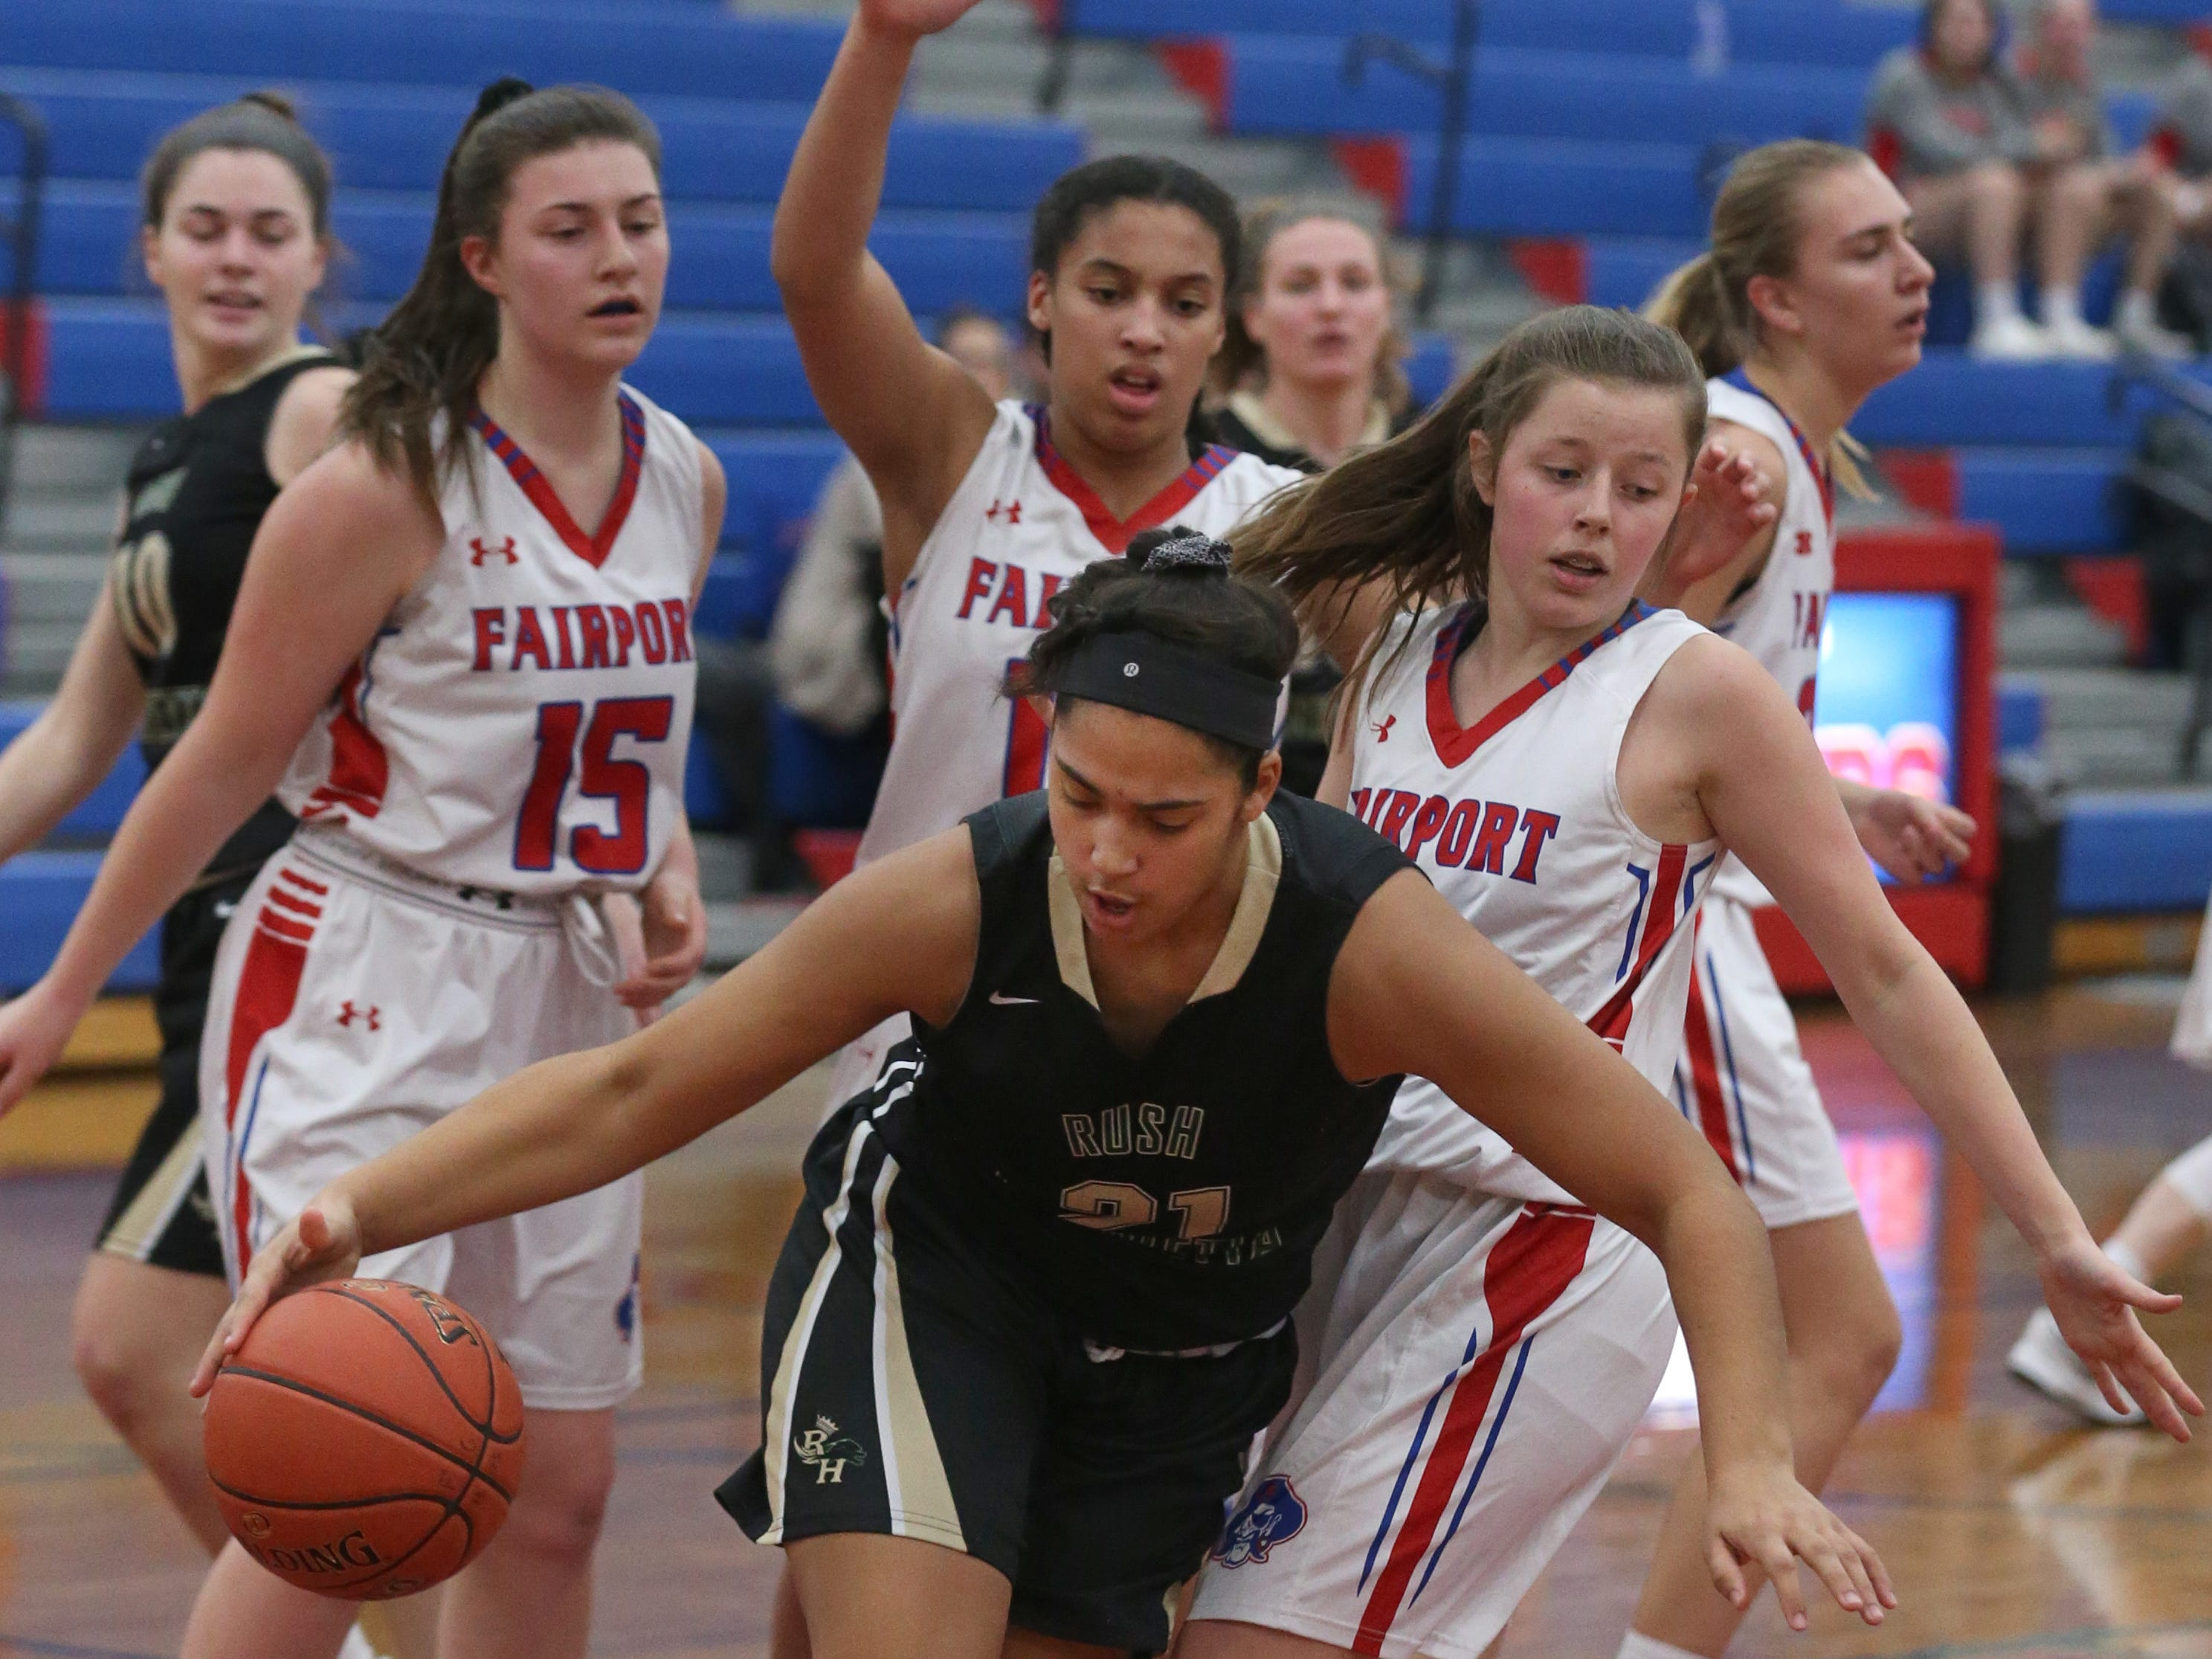 Rush-Henrietta's Gabby Garrett, center, looks for room to move as she pulls down a defensive rebound while surrounded by Fairport's Kat Zimmerman, left, Ella Meabon, center, and Abigail Smith, right.